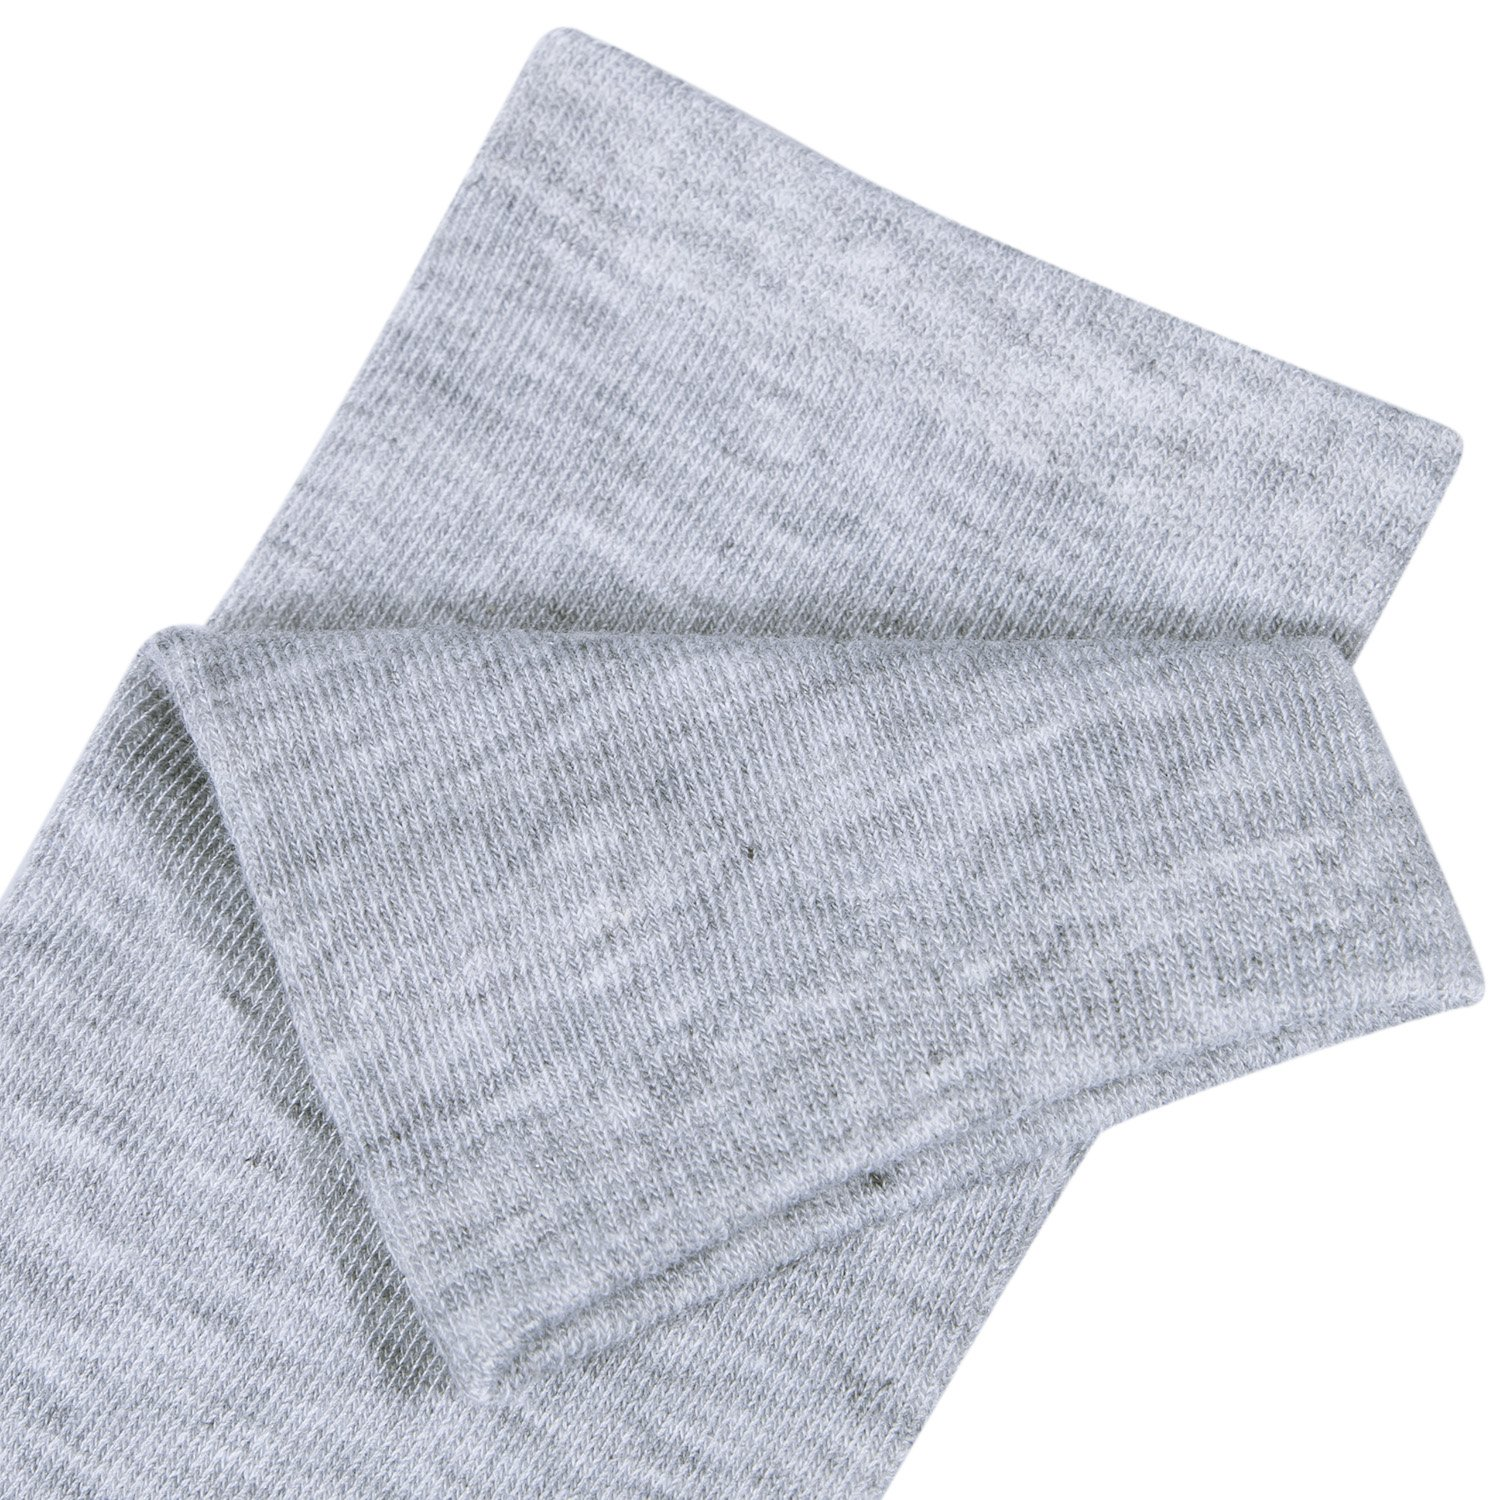 Chalier 3 Pairs Womens Long Socks Over Knee Stockings, White, Gray, Black, OS by Chalier (Image #7)